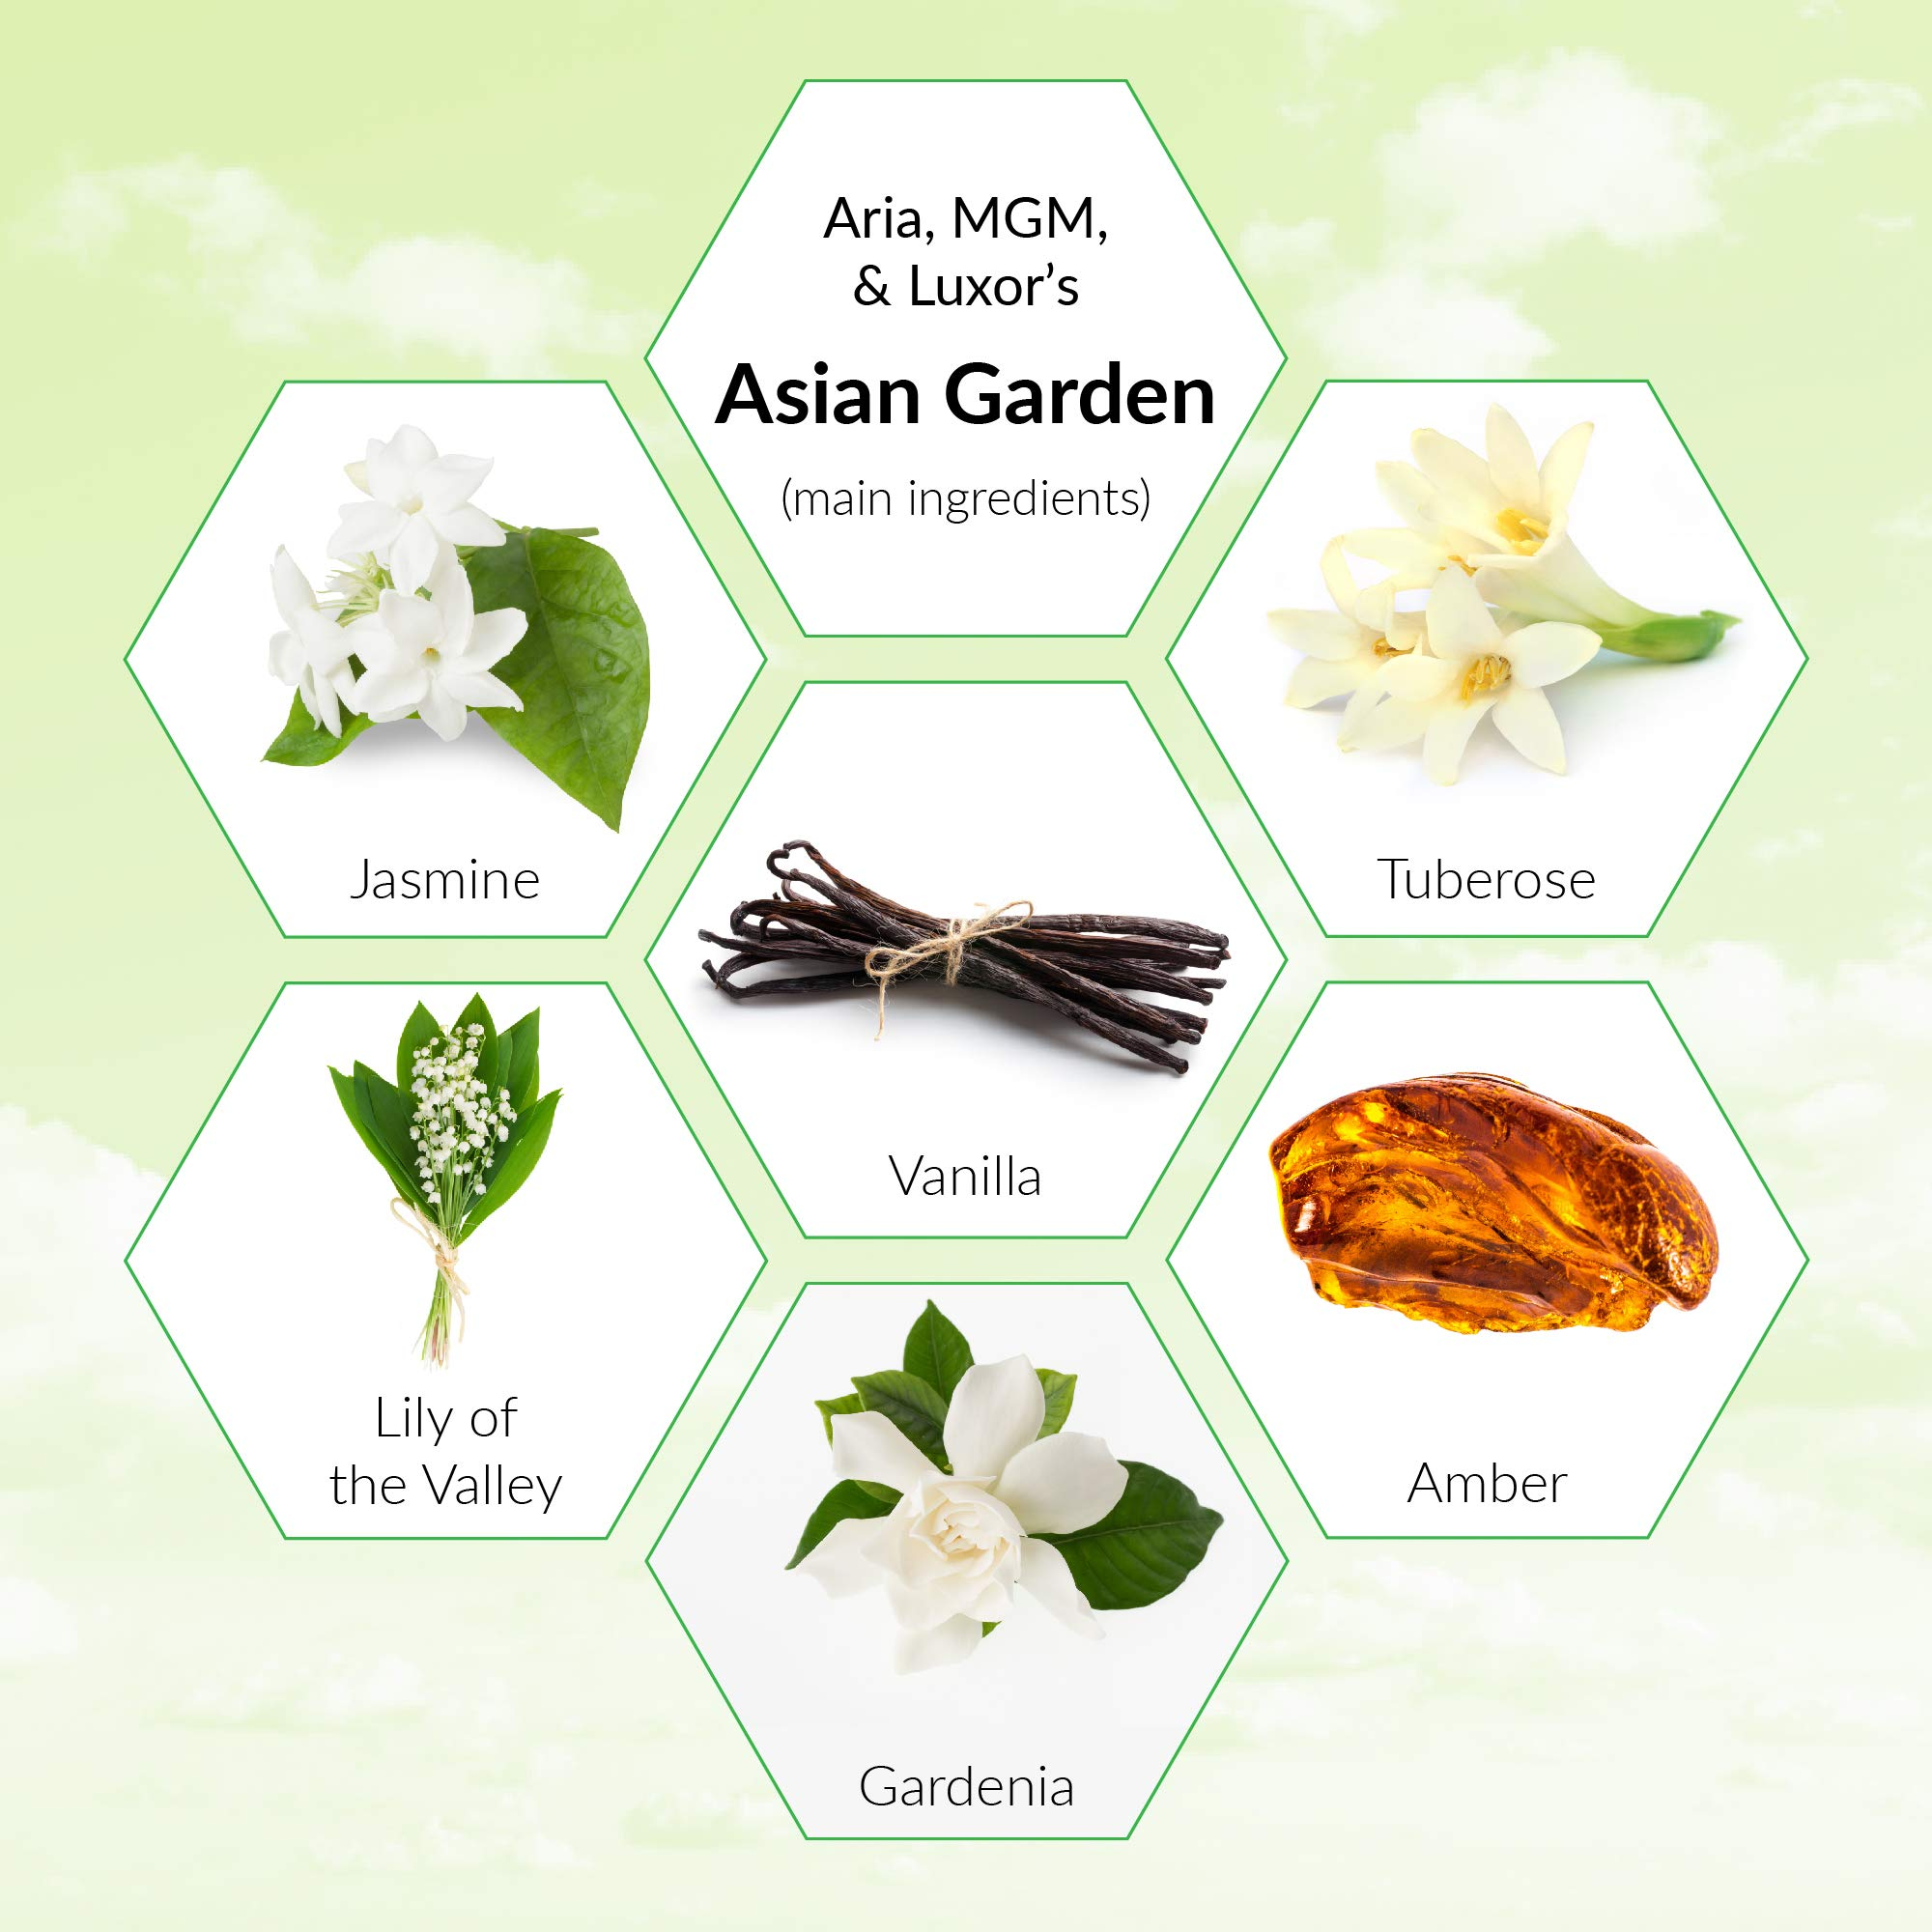 4-Ounce Fragrance Oil Refill for Aroma Diffusion Machine, Asian Garden Essential Oil Blend (Experienced at Aria, Luxor & MGM Hotels) by Scentcerely - Aroma Retail (Image #3)